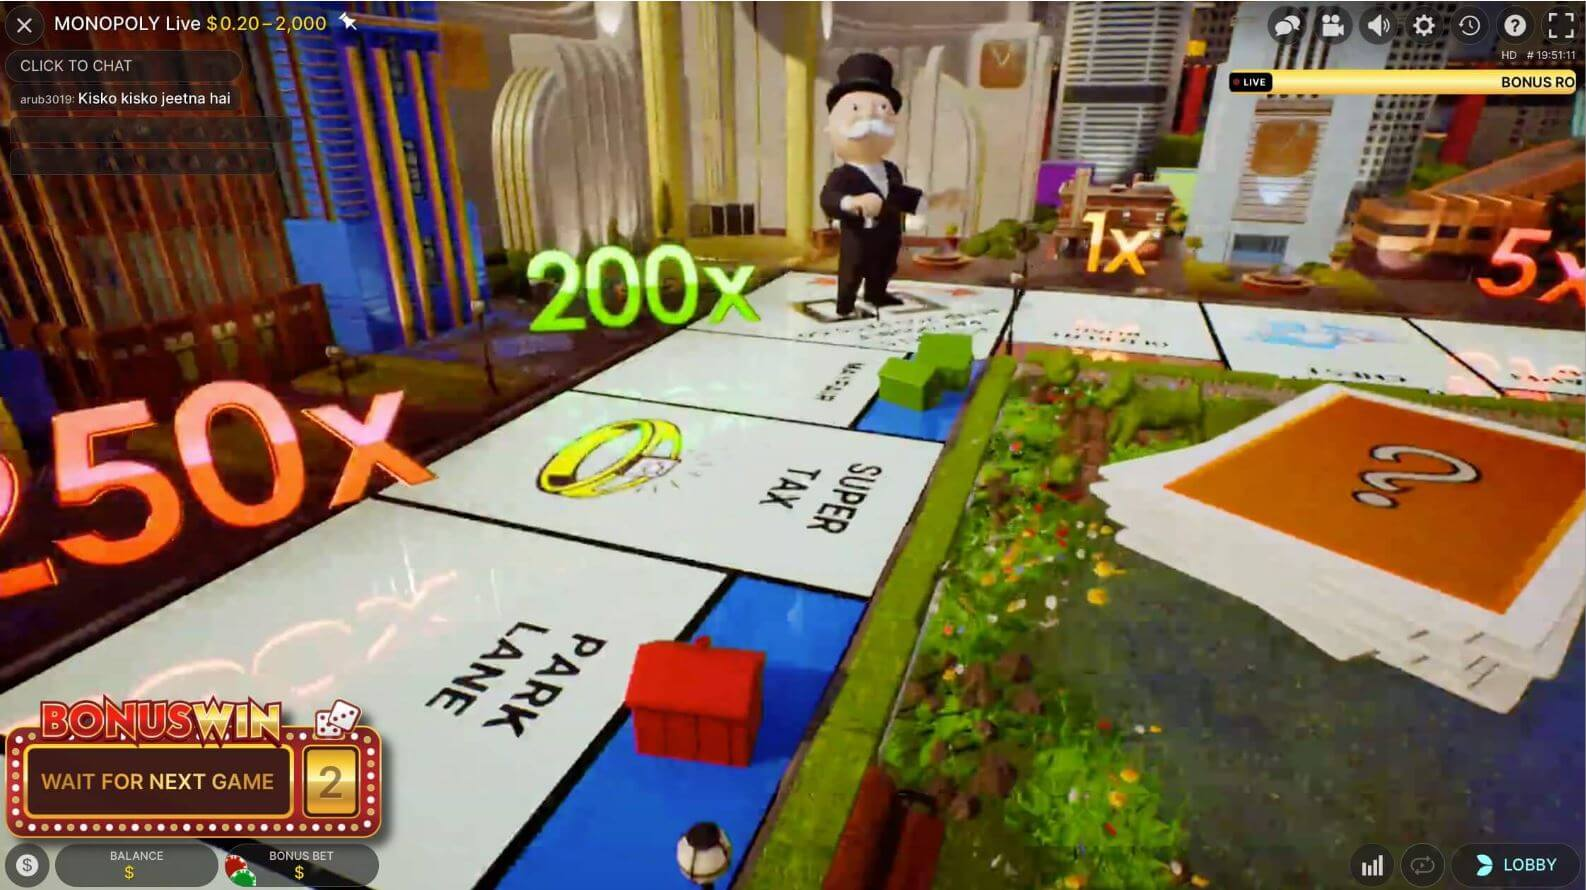 Monopoly Live multipliers